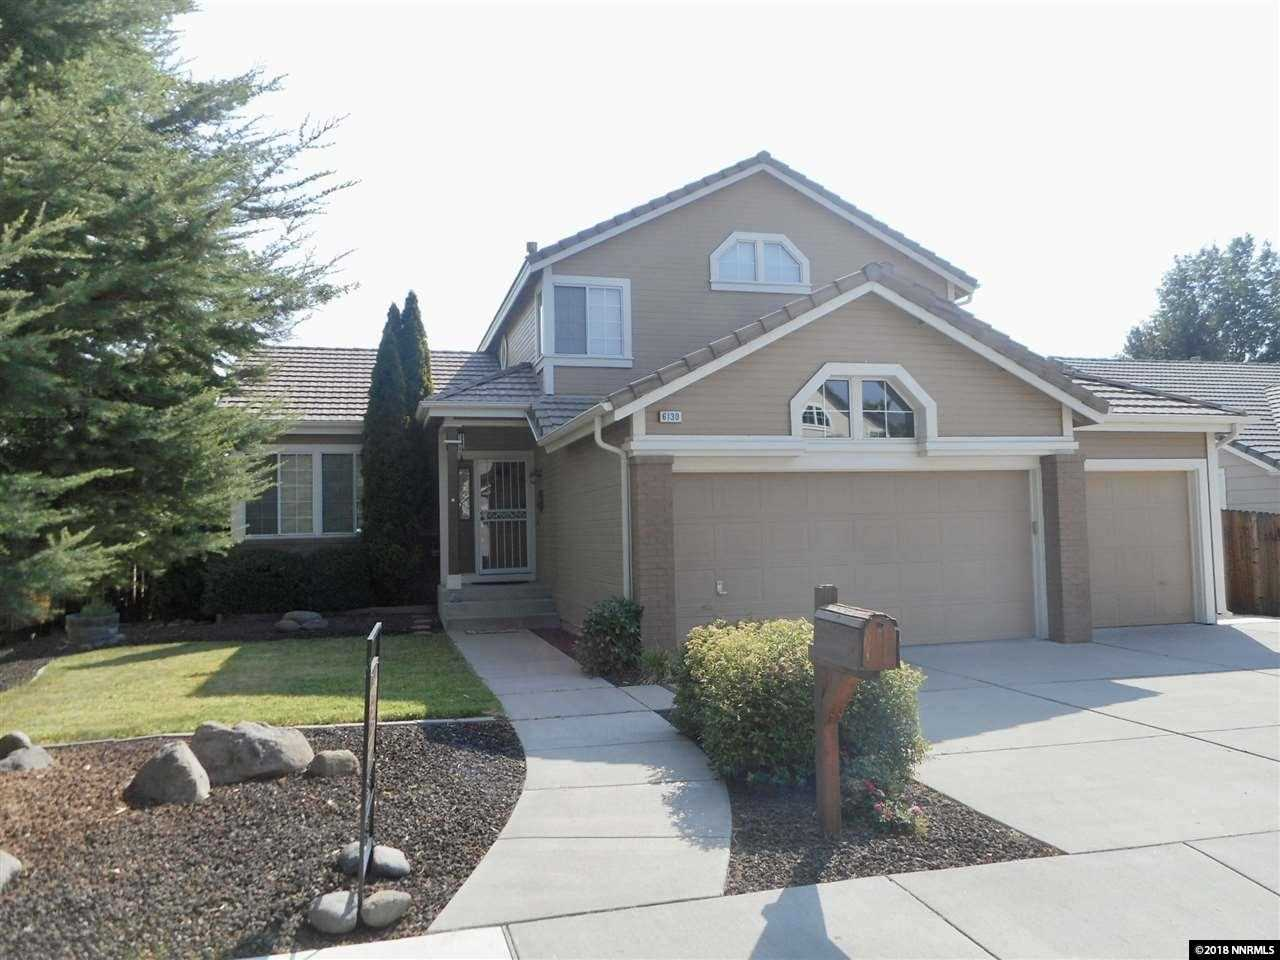 6130 Torrington Dr. Reno, NV 89511 | MLS 180012114 on zip codes by map of reno, zip codes in reno nevada, zip code nv 89428, zip code map of reno nevada,